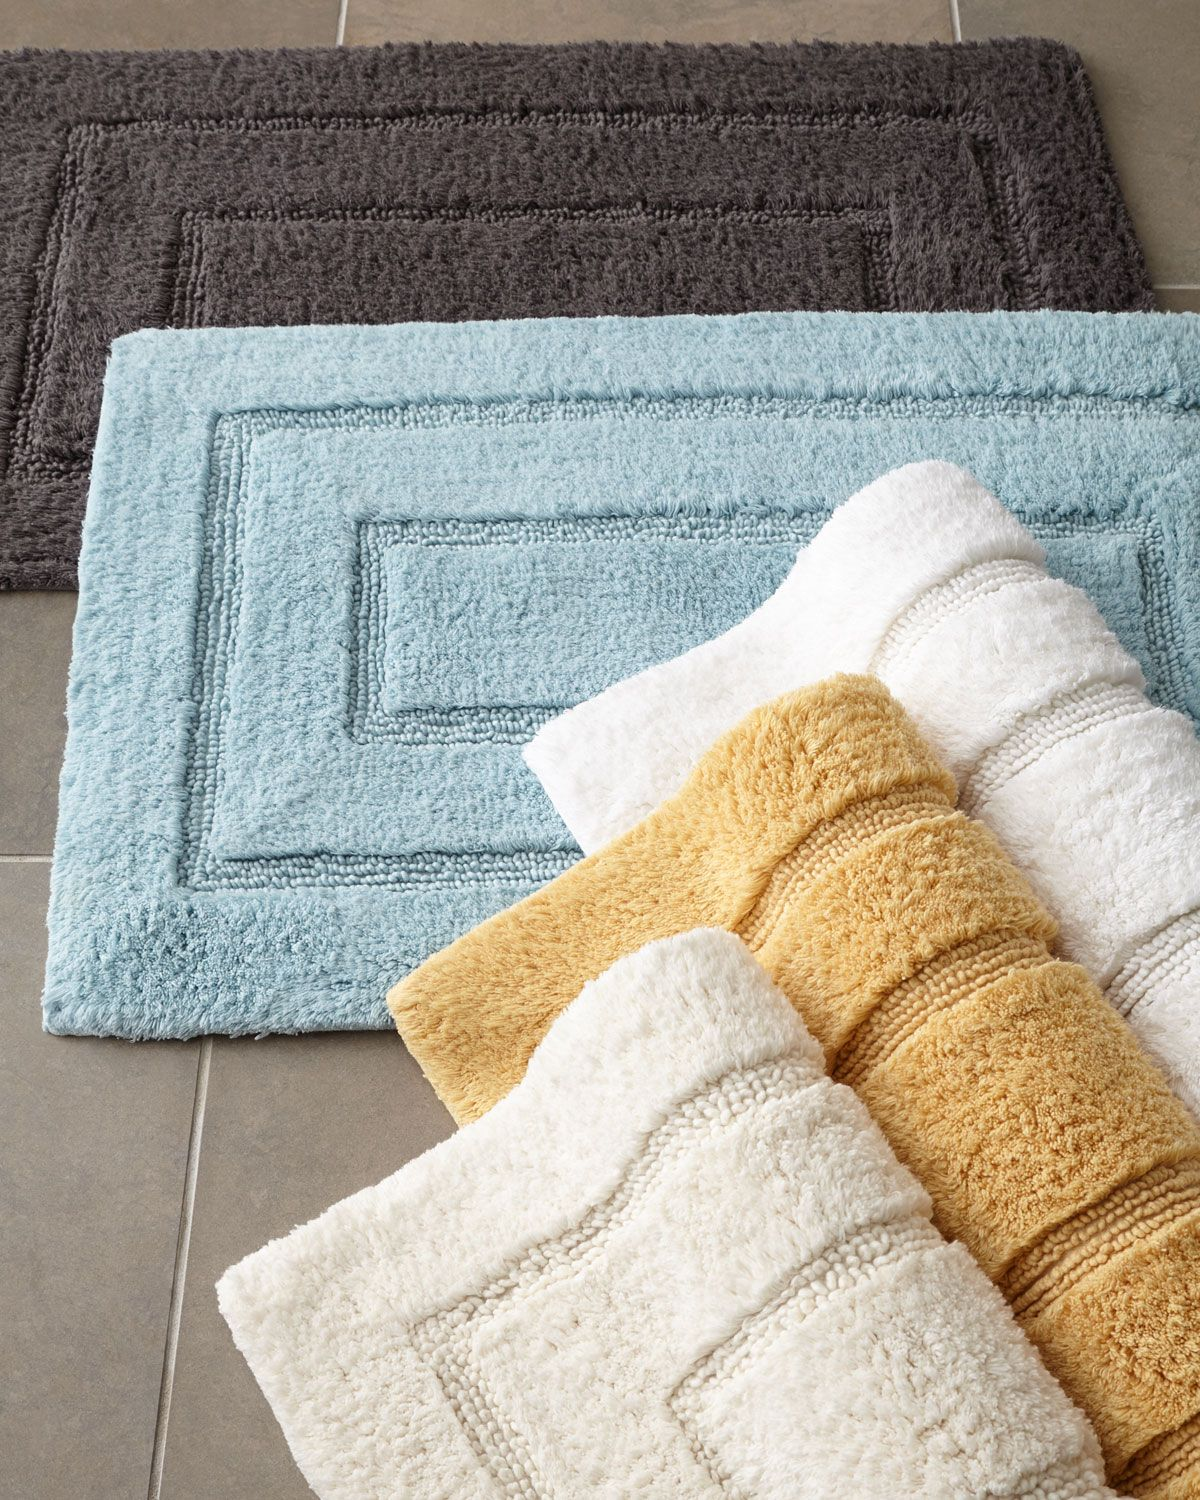 Bath Rug Set Walmart: Kassatex Tufted Cotton Bath Rug, 20 X 32